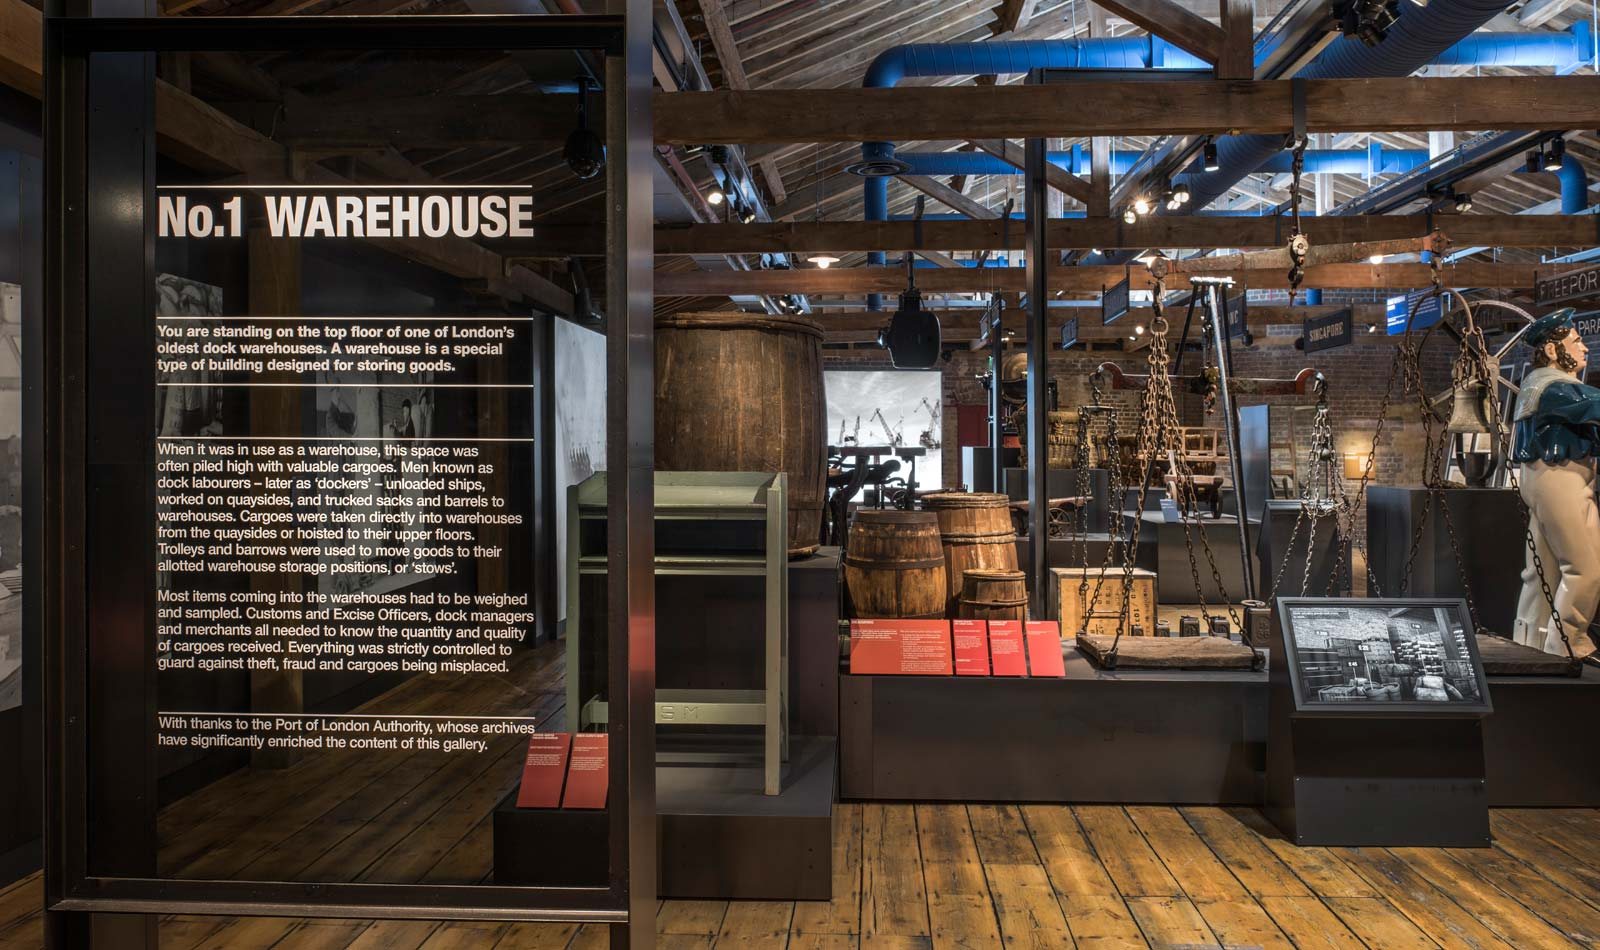 Museum of London No 1 Warehouse